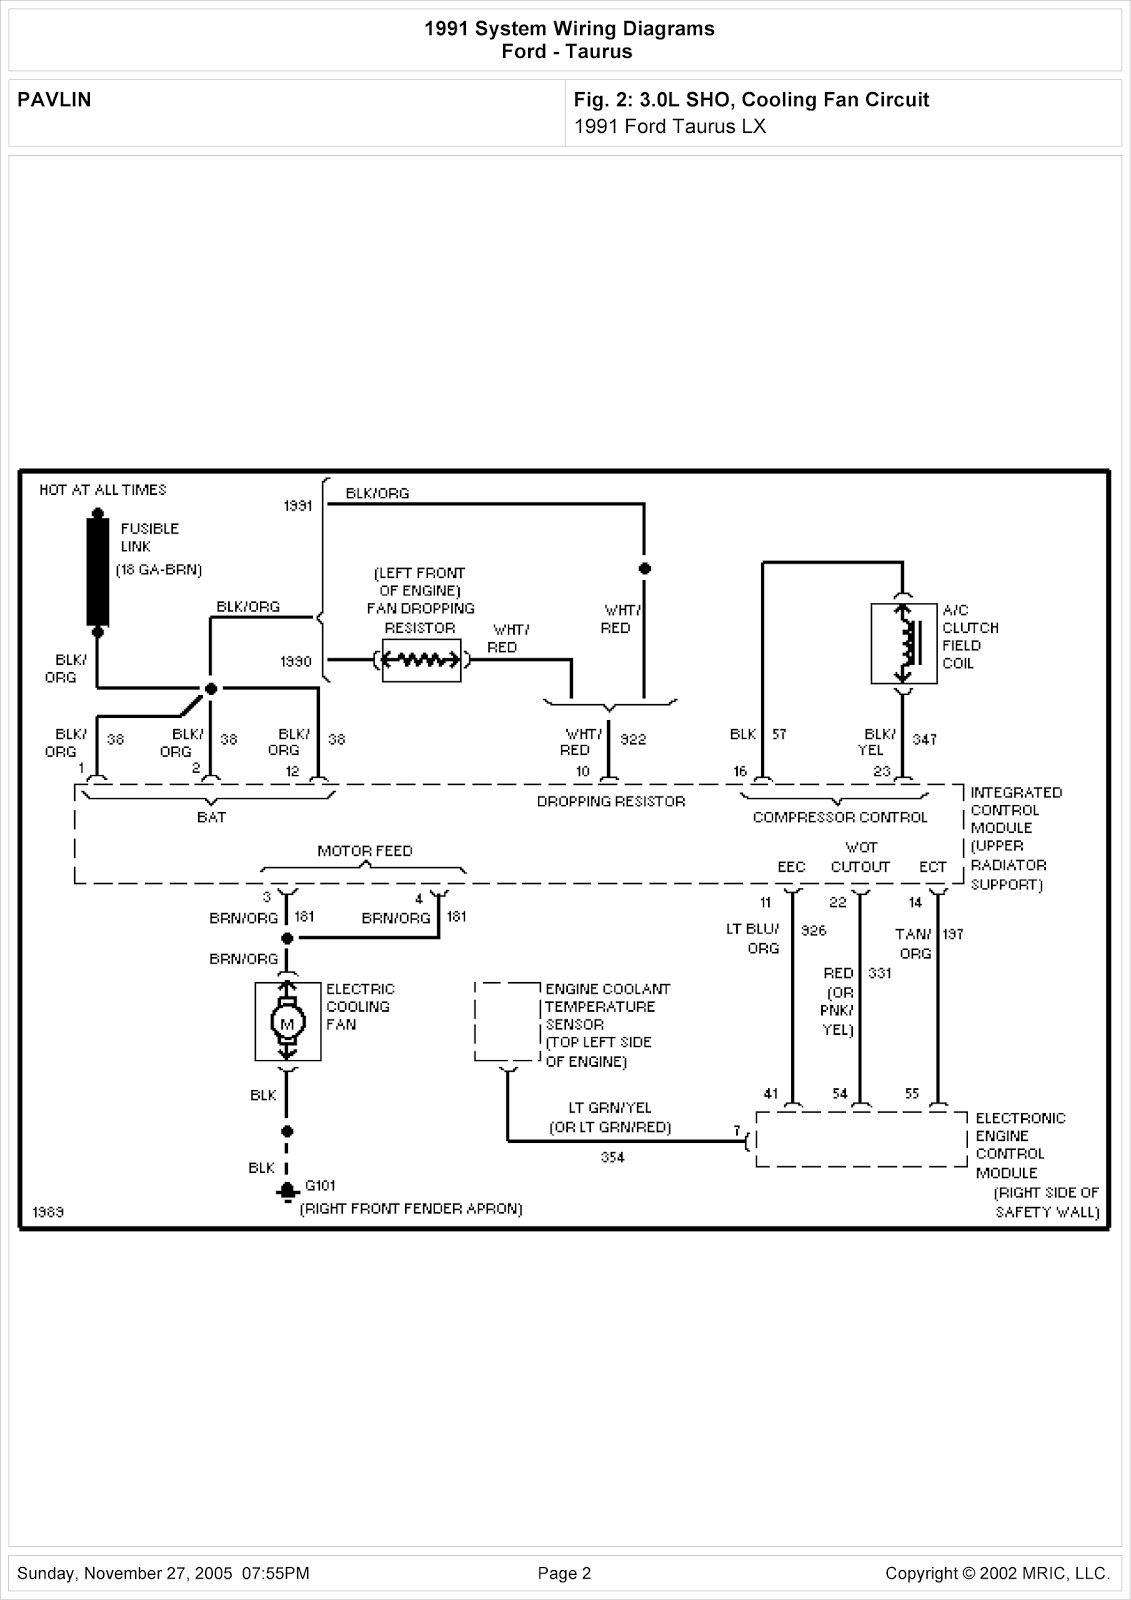 2007 ford taurus wiring diagram for radio 2011 ford taurus wiring diagram 1999 ford taurus system wiring diagram cooling fan circuit ...